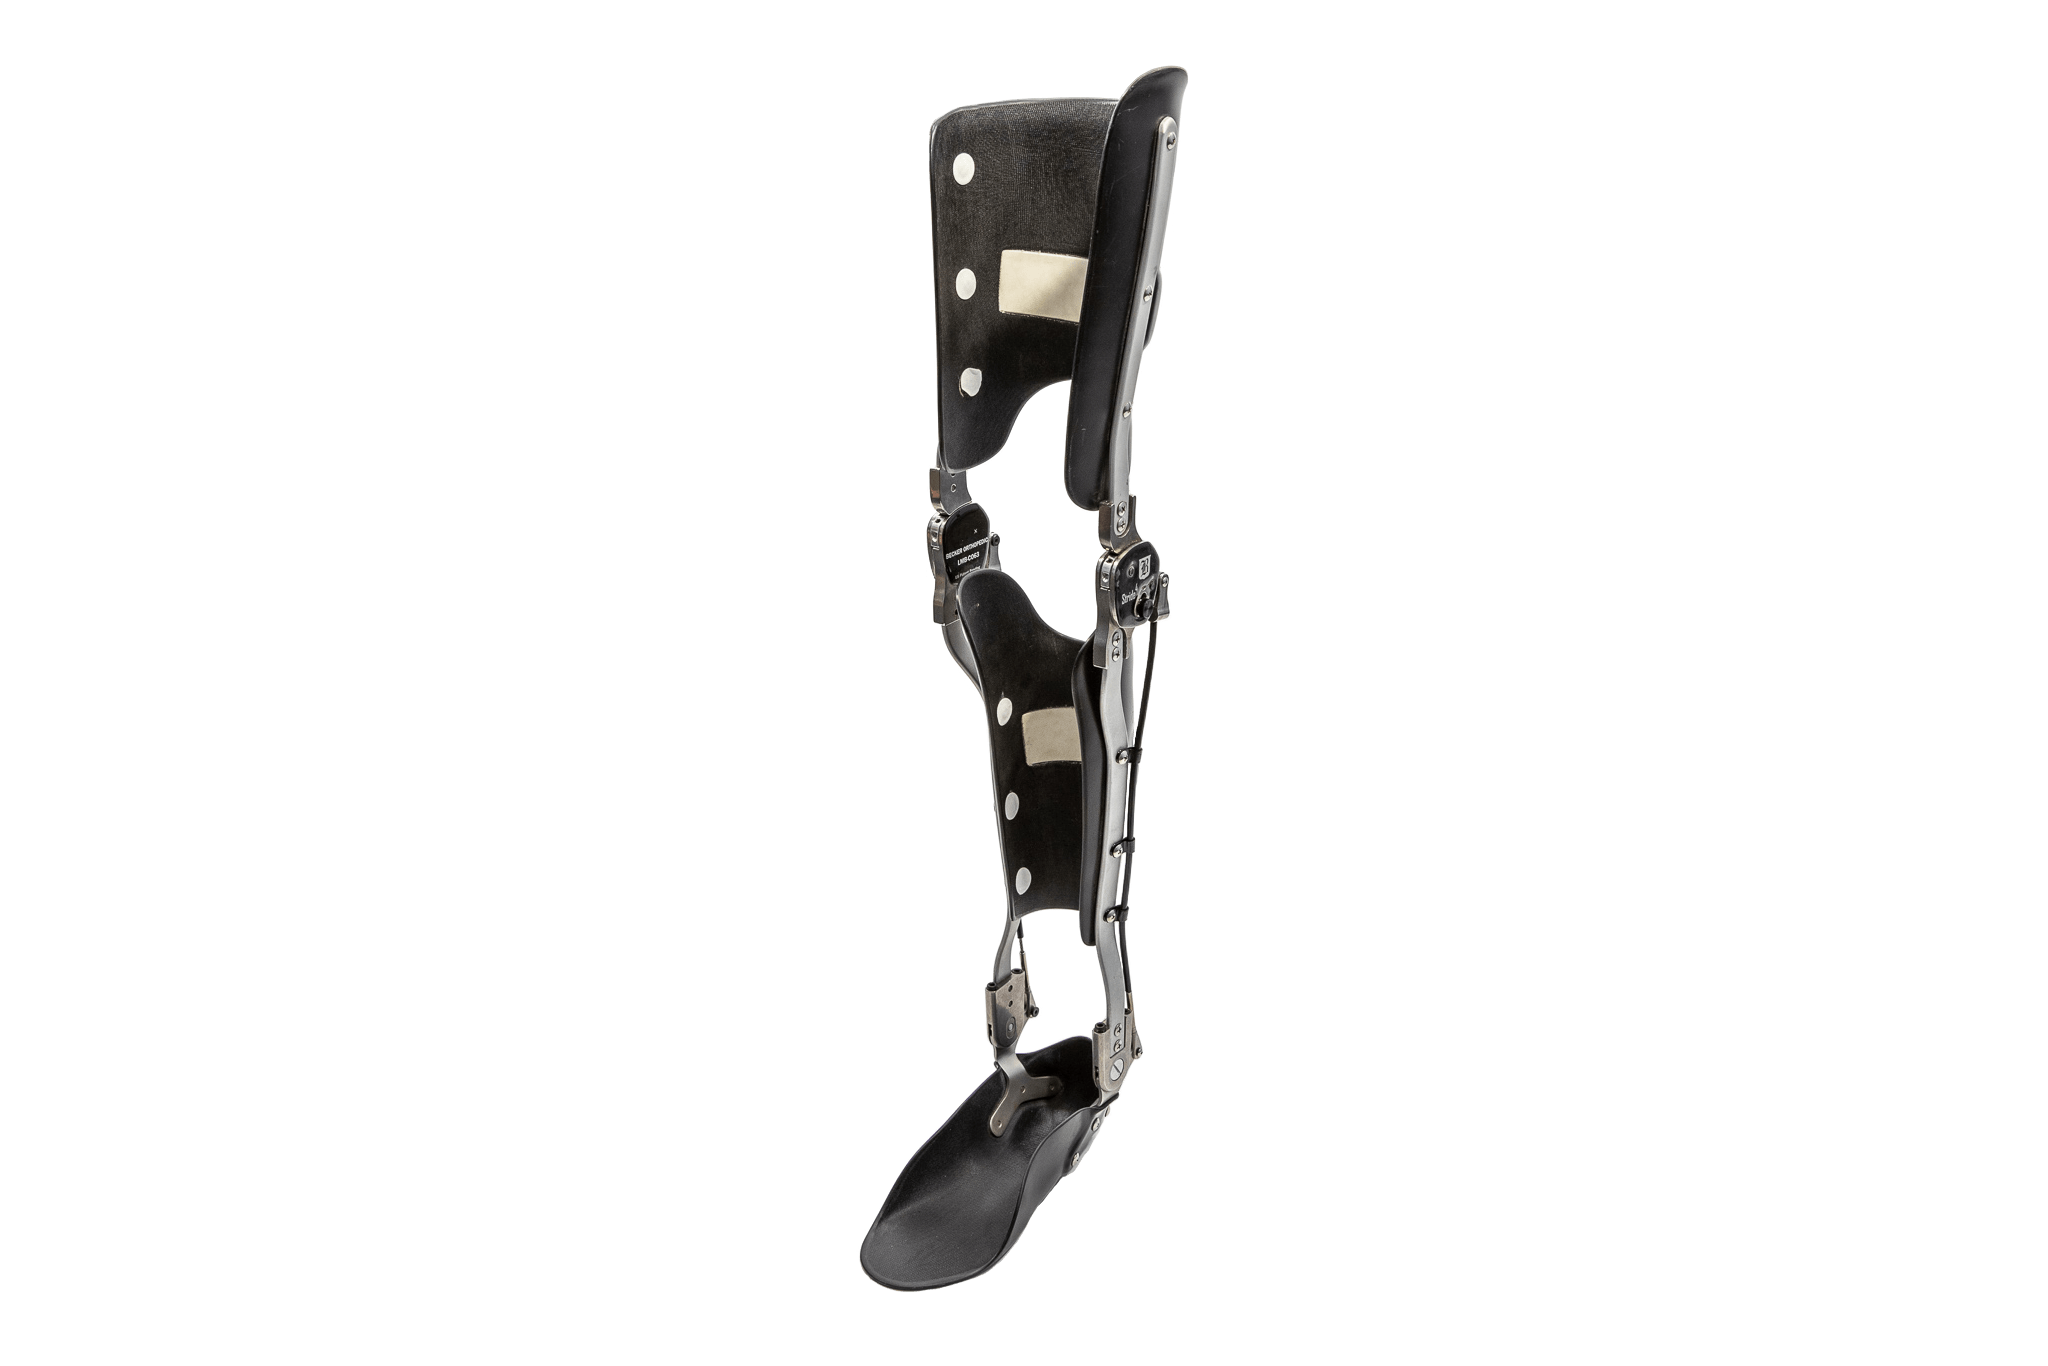 A knee, ankle, and foot orthotic.